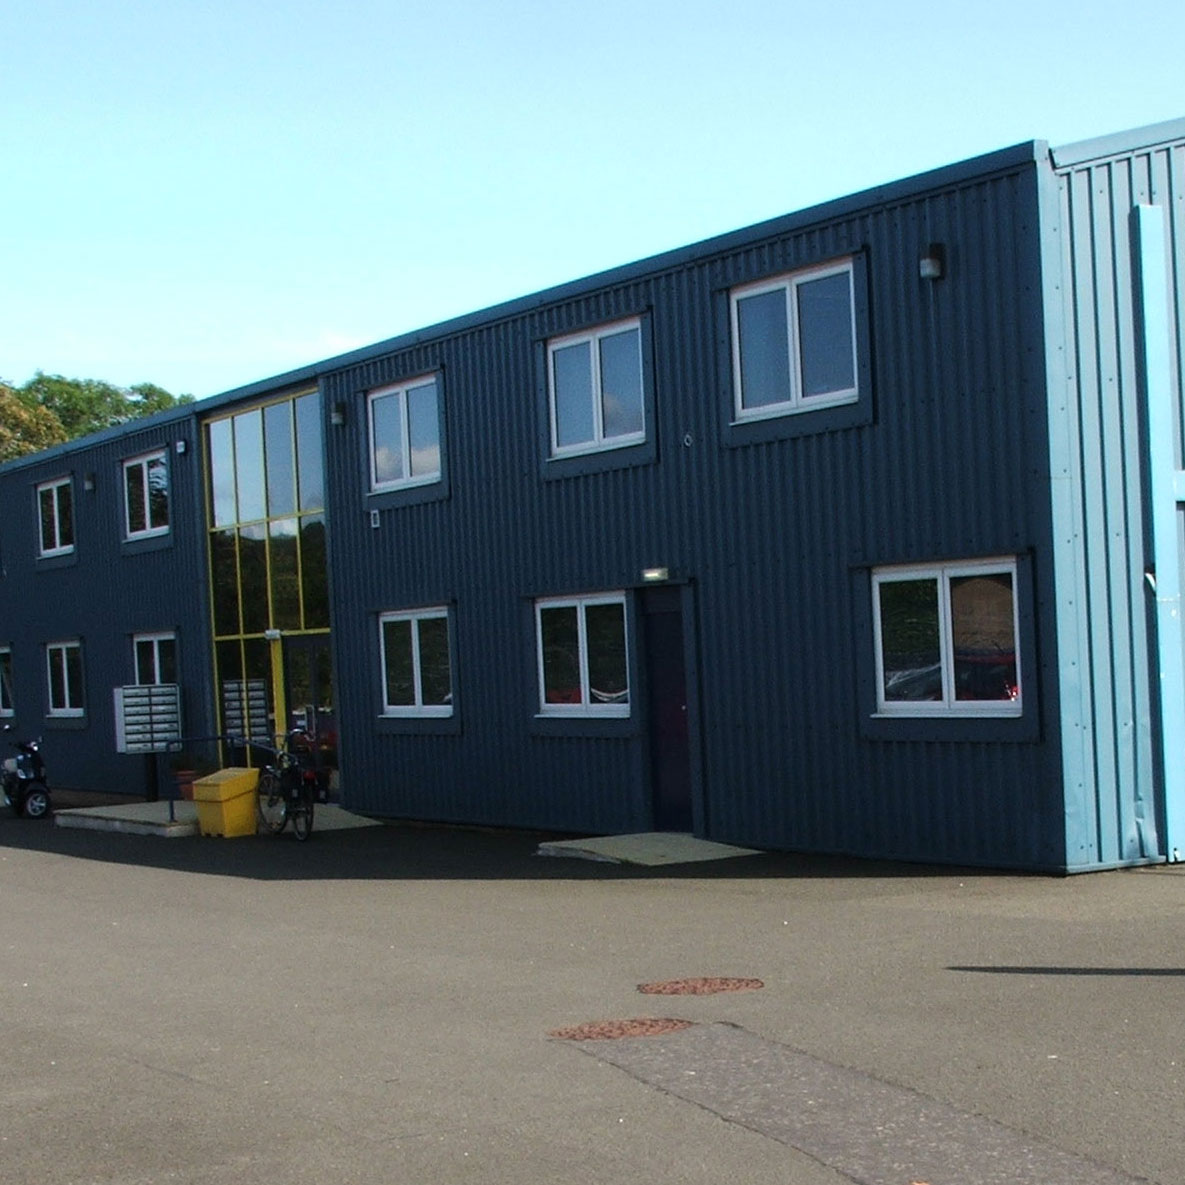 Office Spaces To Rent, Mill Road Industrial Estate, Linlithgow Bridge, Linlithgow, Edinburgh, EH49, Main